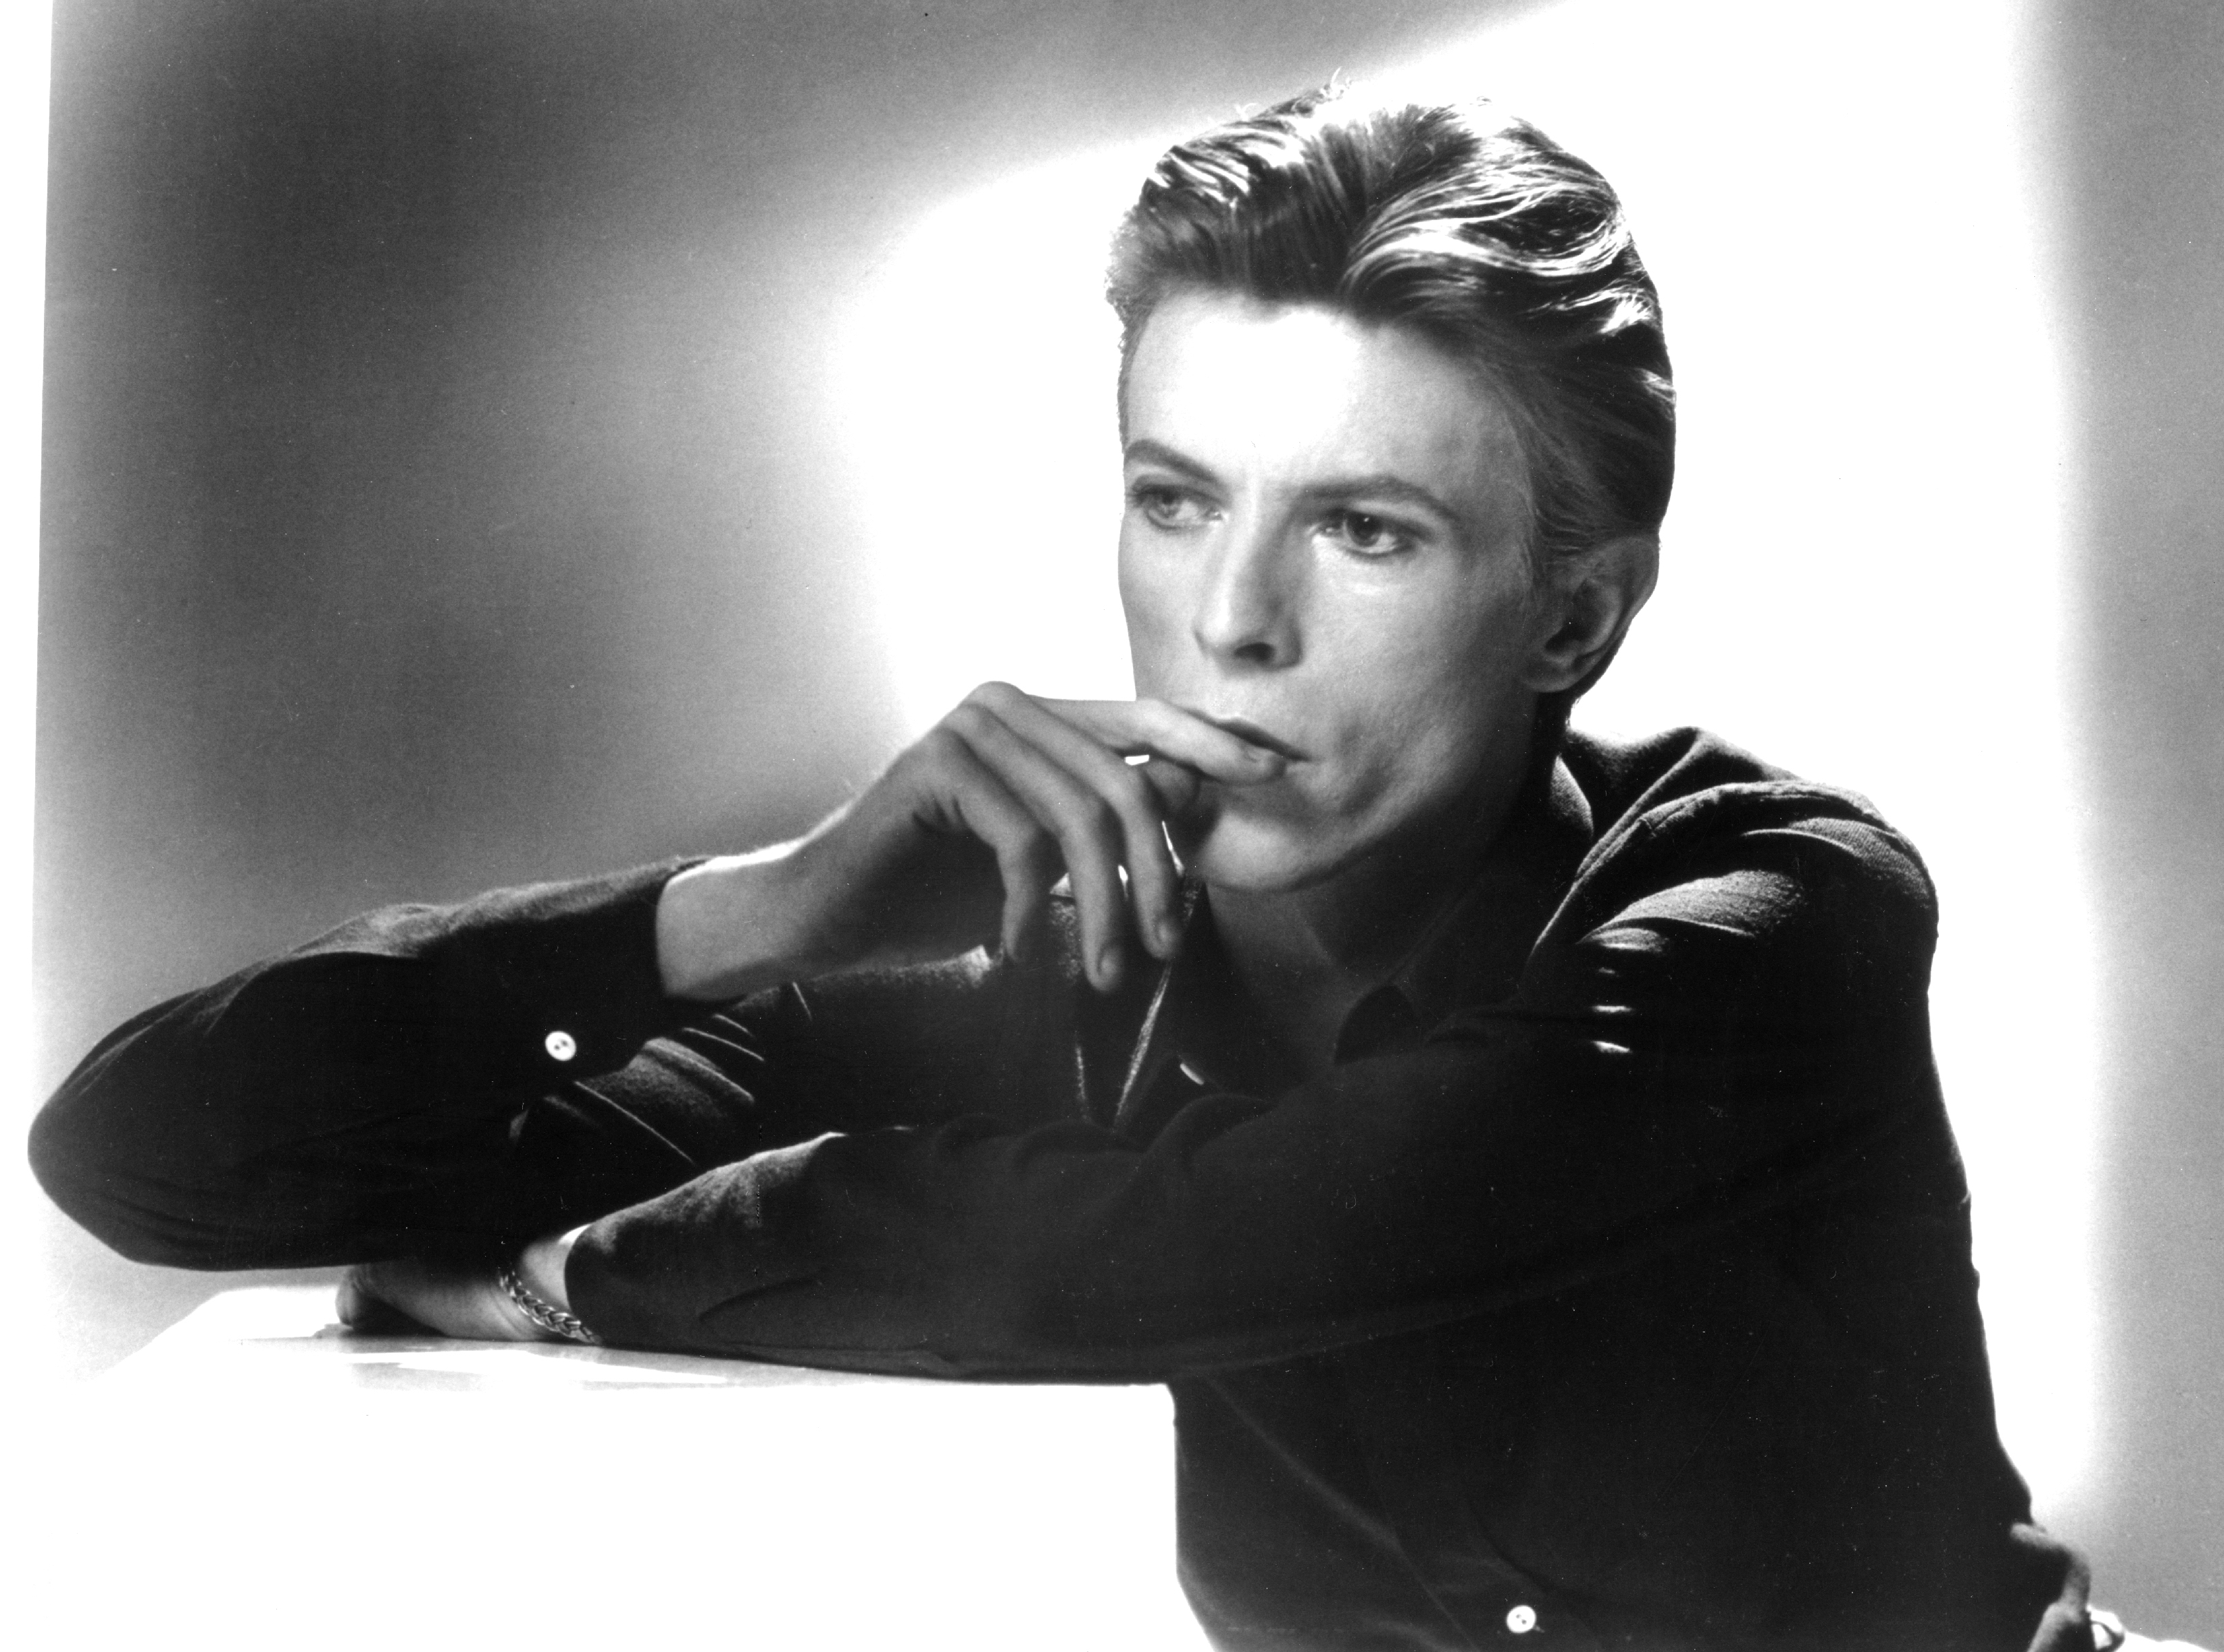 David Bowie; Wild Quotes; Station to Station; Era